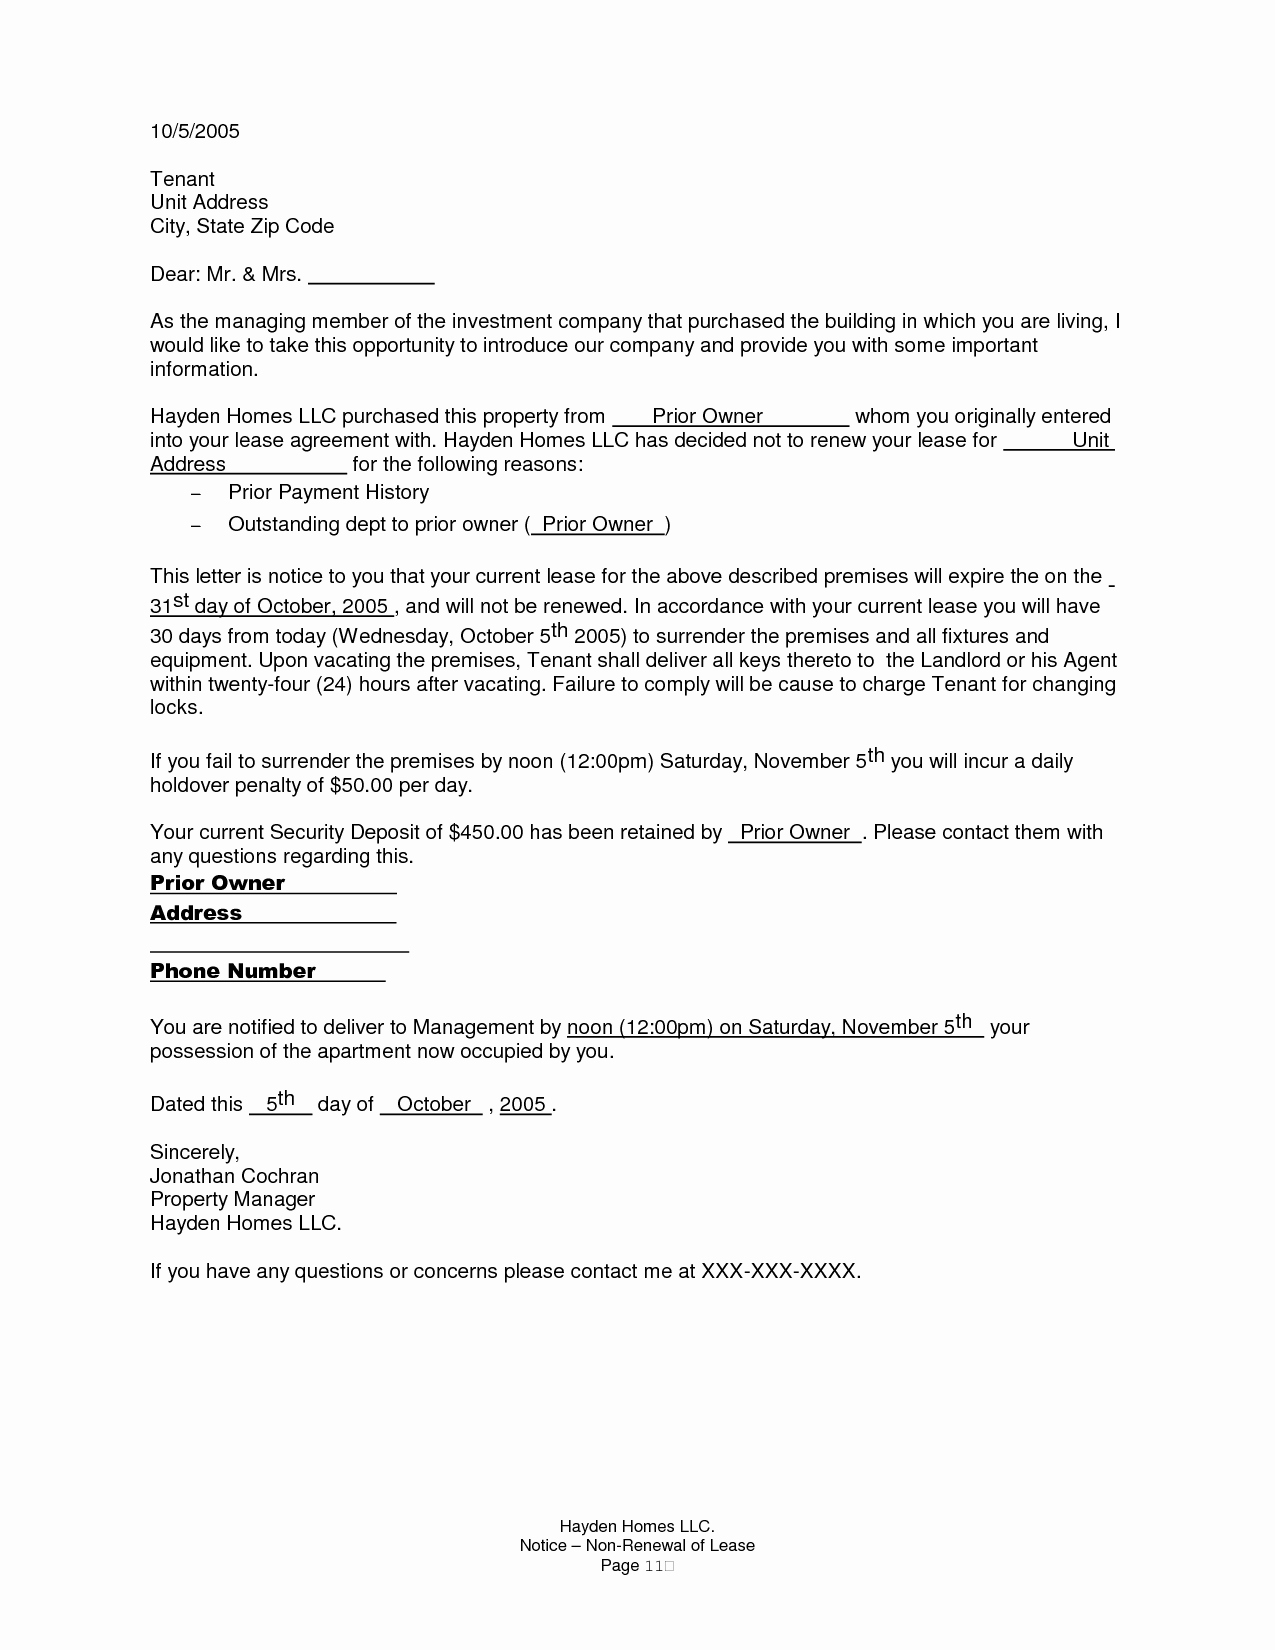 Not Renewing Lease Letter Template - Lease Termination Letter to Landlord Awesome Renewal Notice Letter